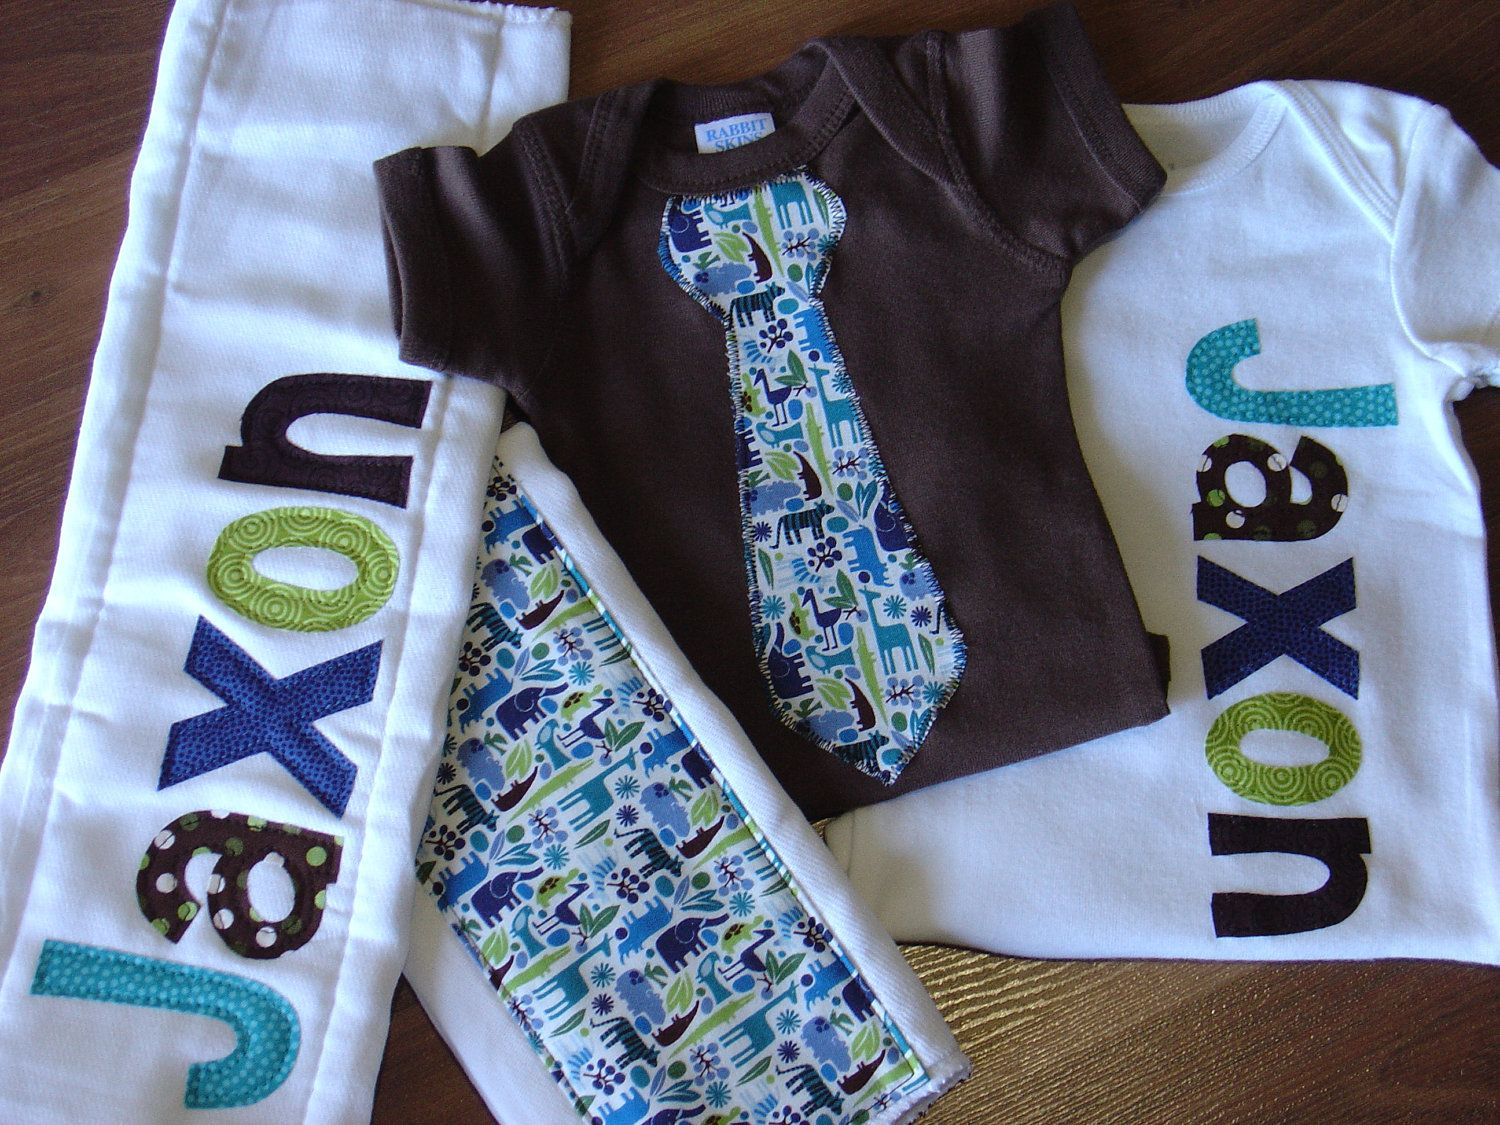 Boys Personalized Onesie and Burp Cloth Set, Perfect for Baby Shower Gift or Decoration - 2D Zoo, Jungle Animals. $45.00, via Etsy.